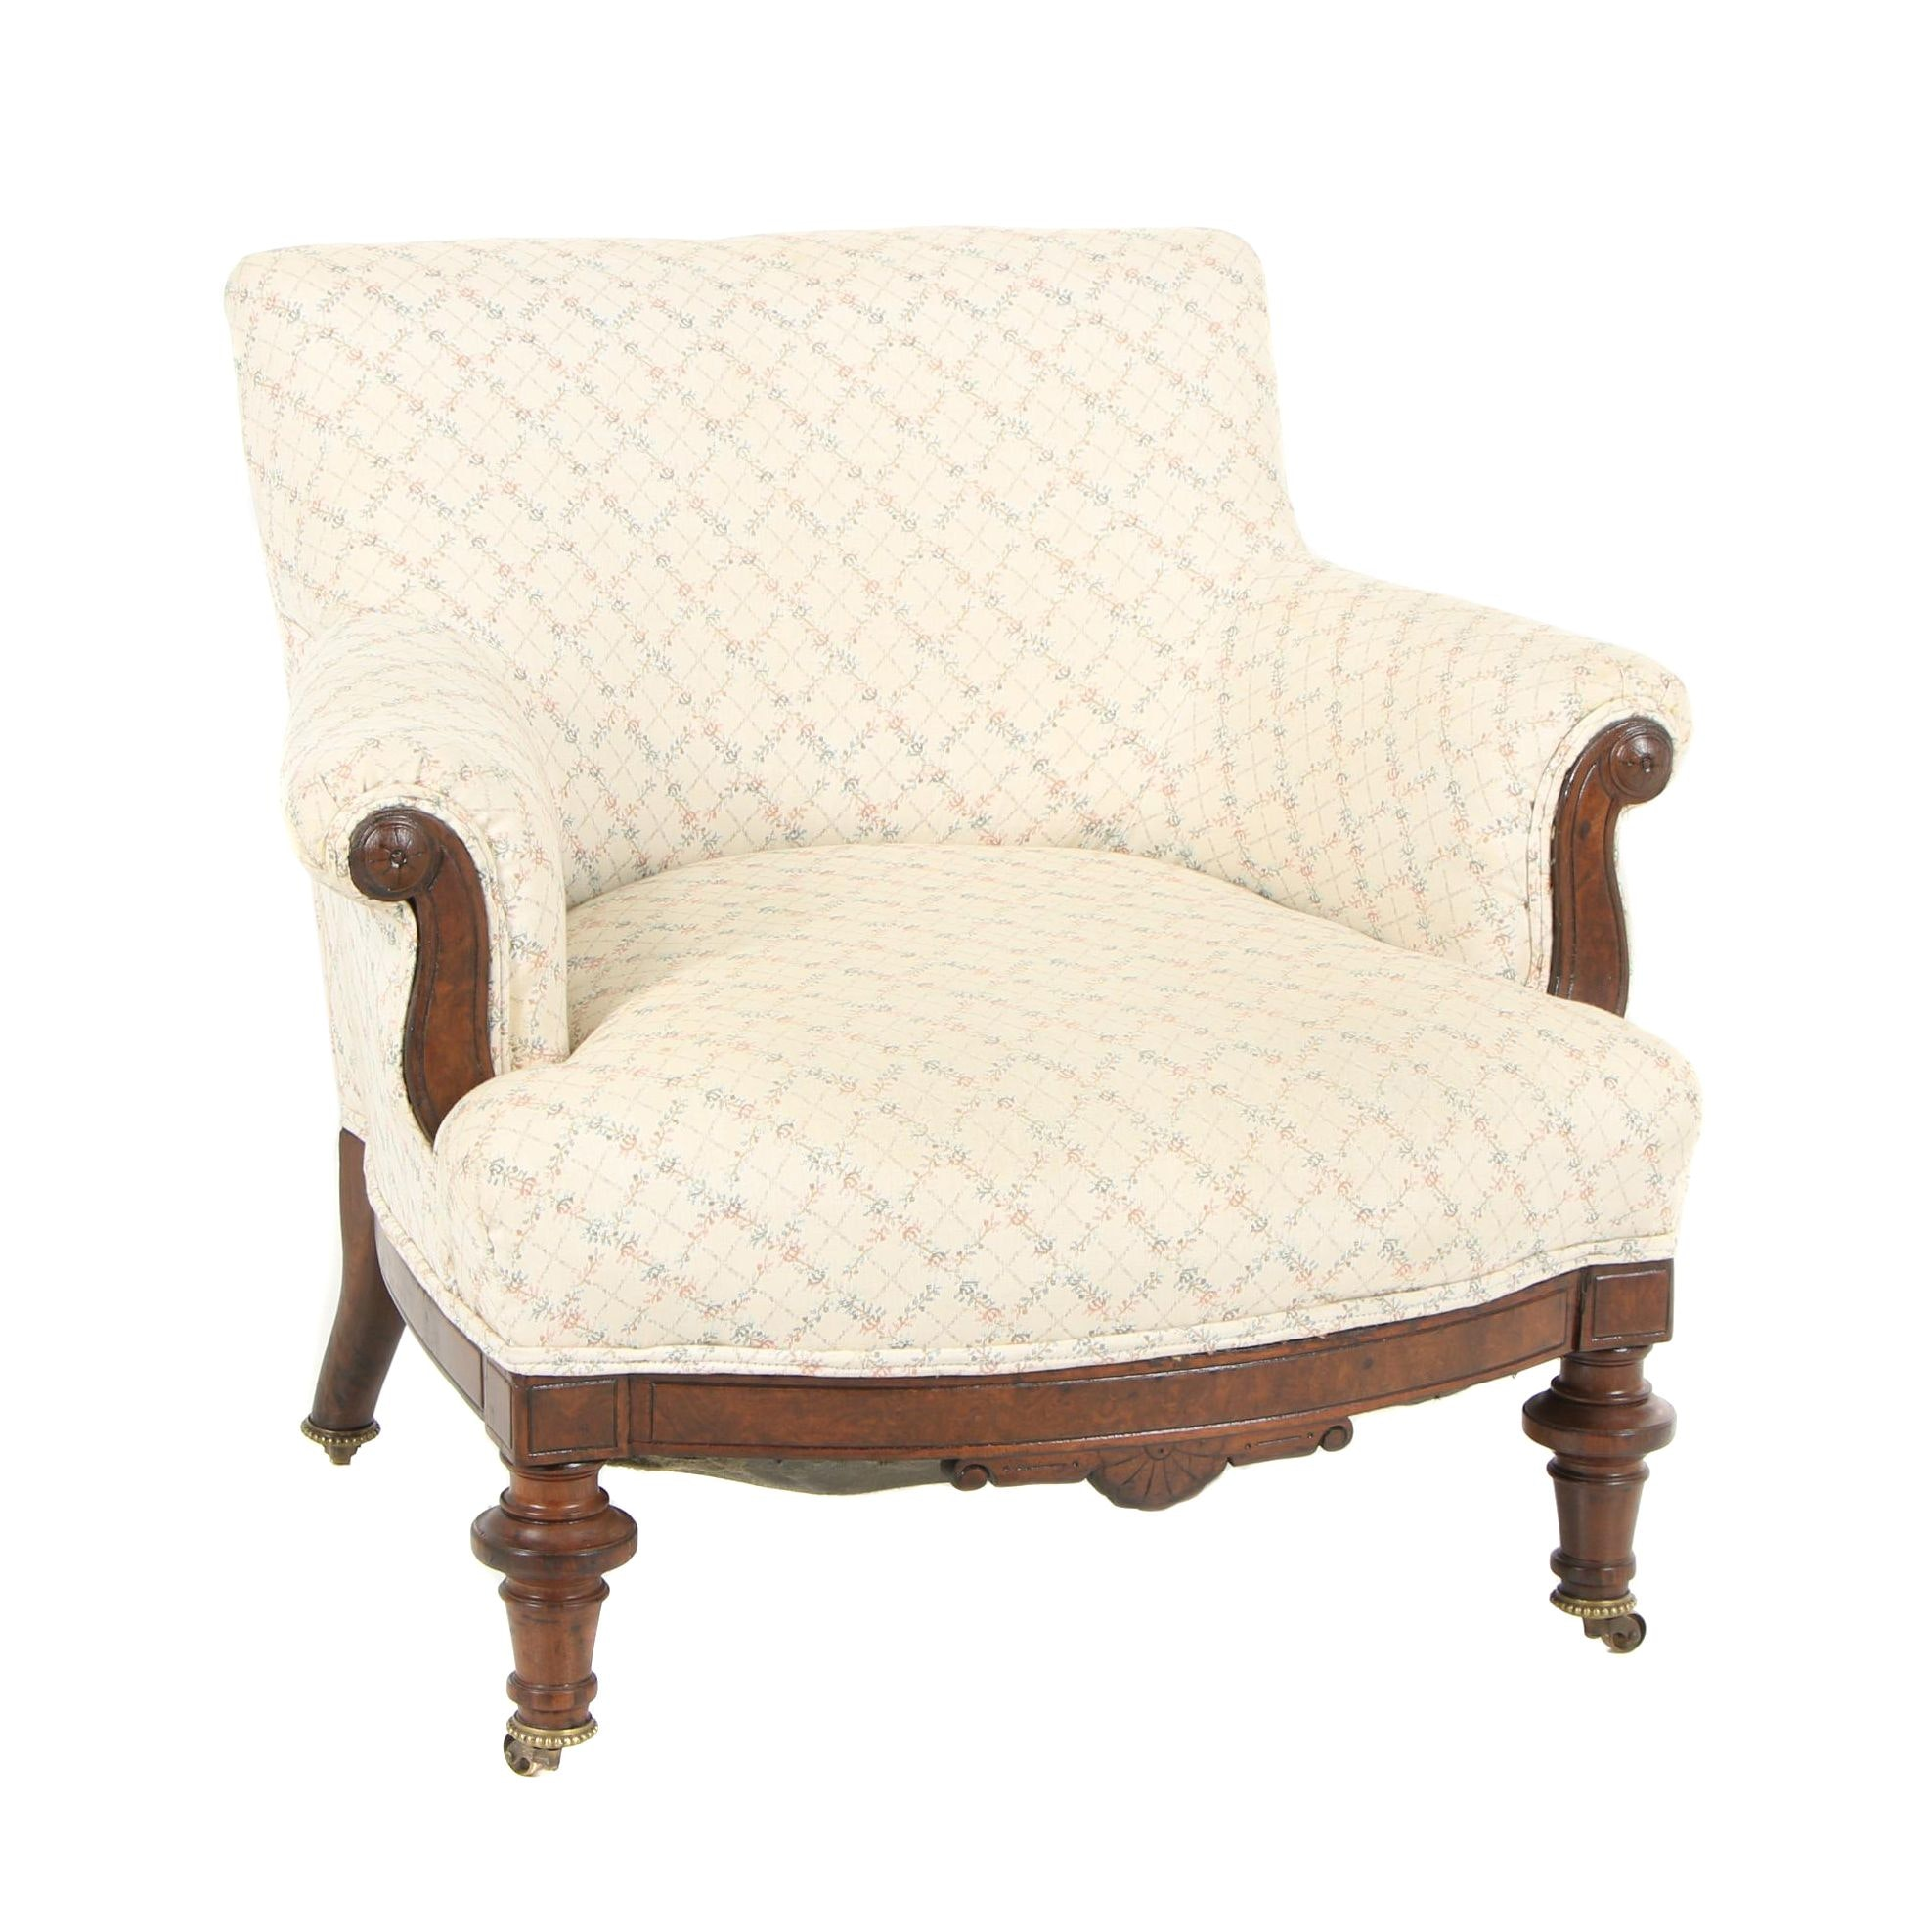 Eastlake Style Walnut Frame Upholstered Armchair on Casters, Late 20th Century